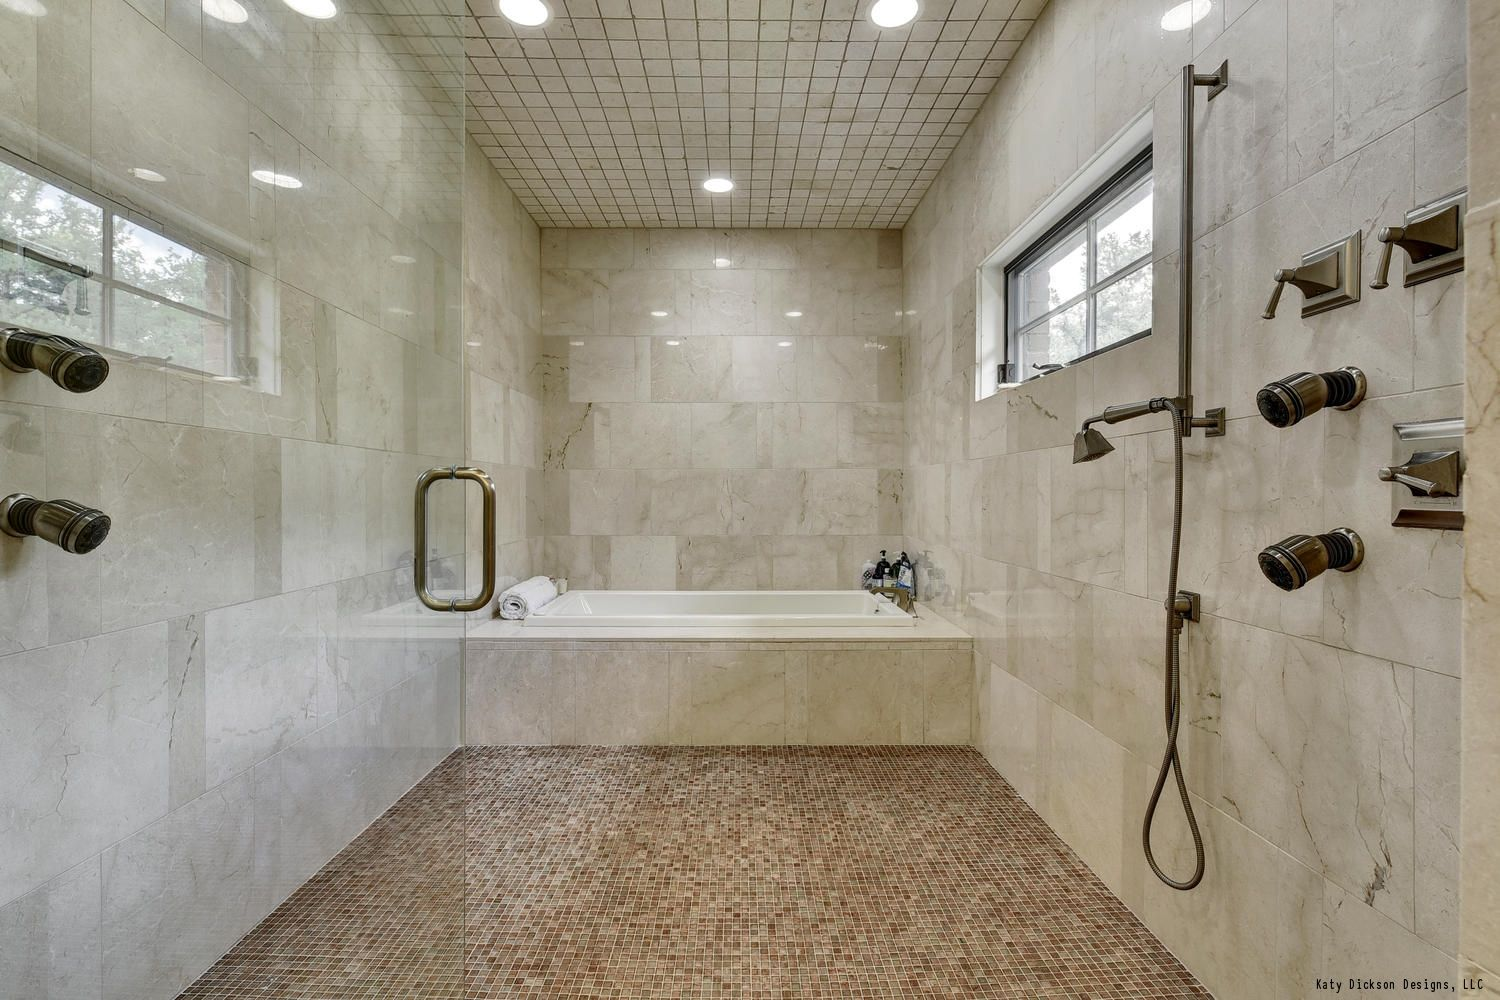 Reported Cost Of Shower Retiling Per 100 Square Feet Average